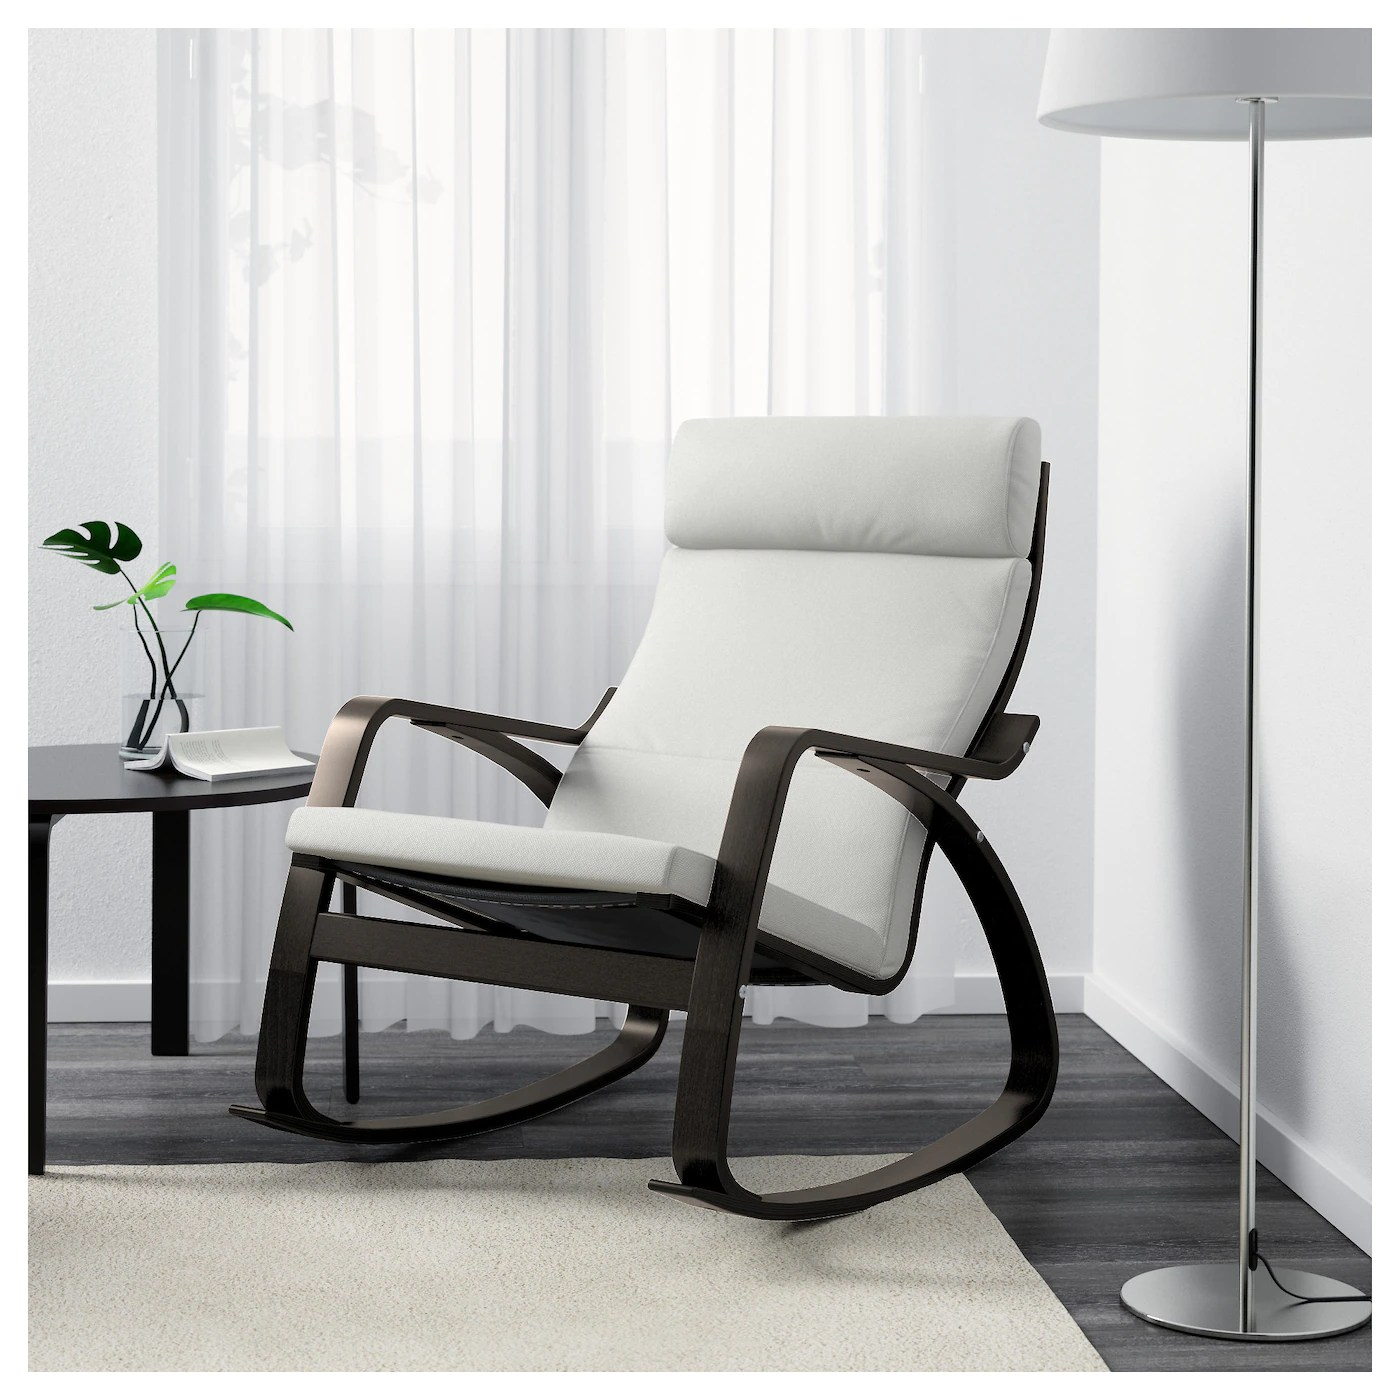 ikea rocking chairs fishing chair/backpack combo poÄng chair black brown finnsta white